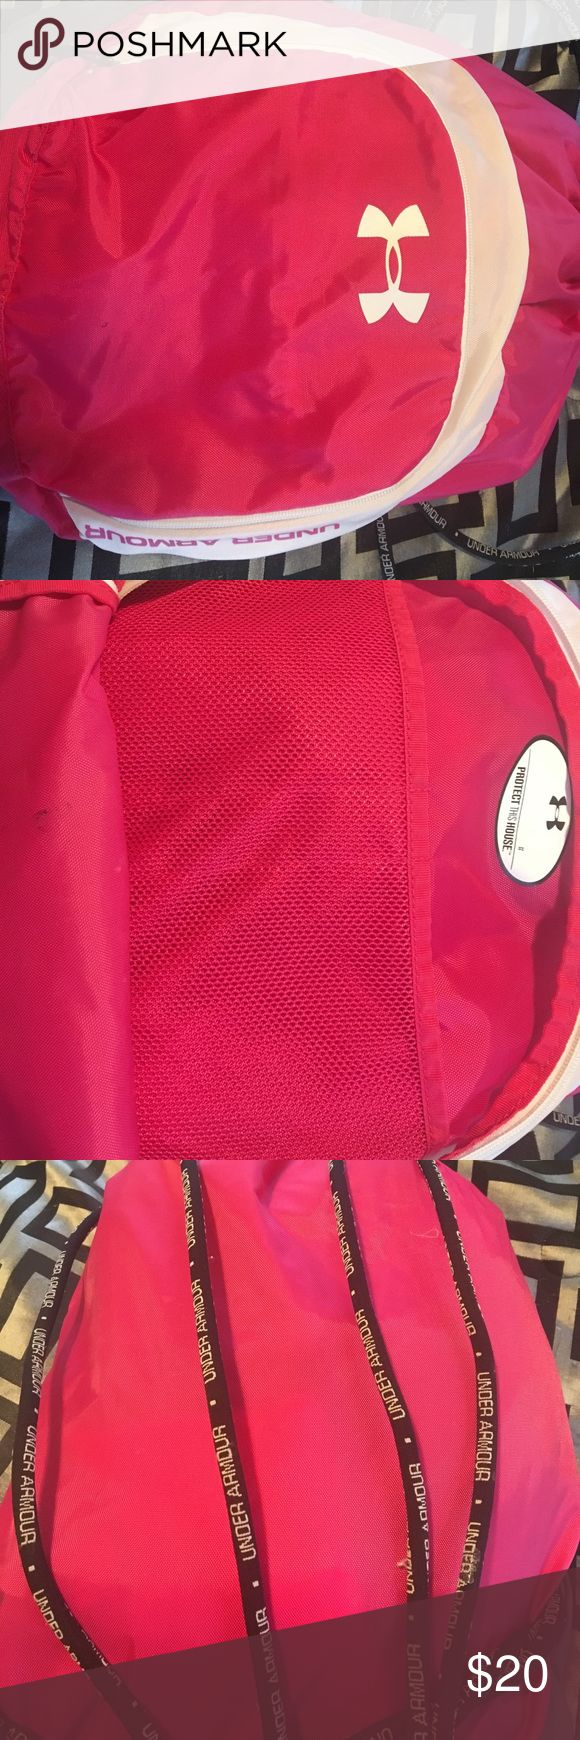 Small gym bag Pink under armor bag. Used a few times, nothing wrong. Under Armour Bags Backpacks